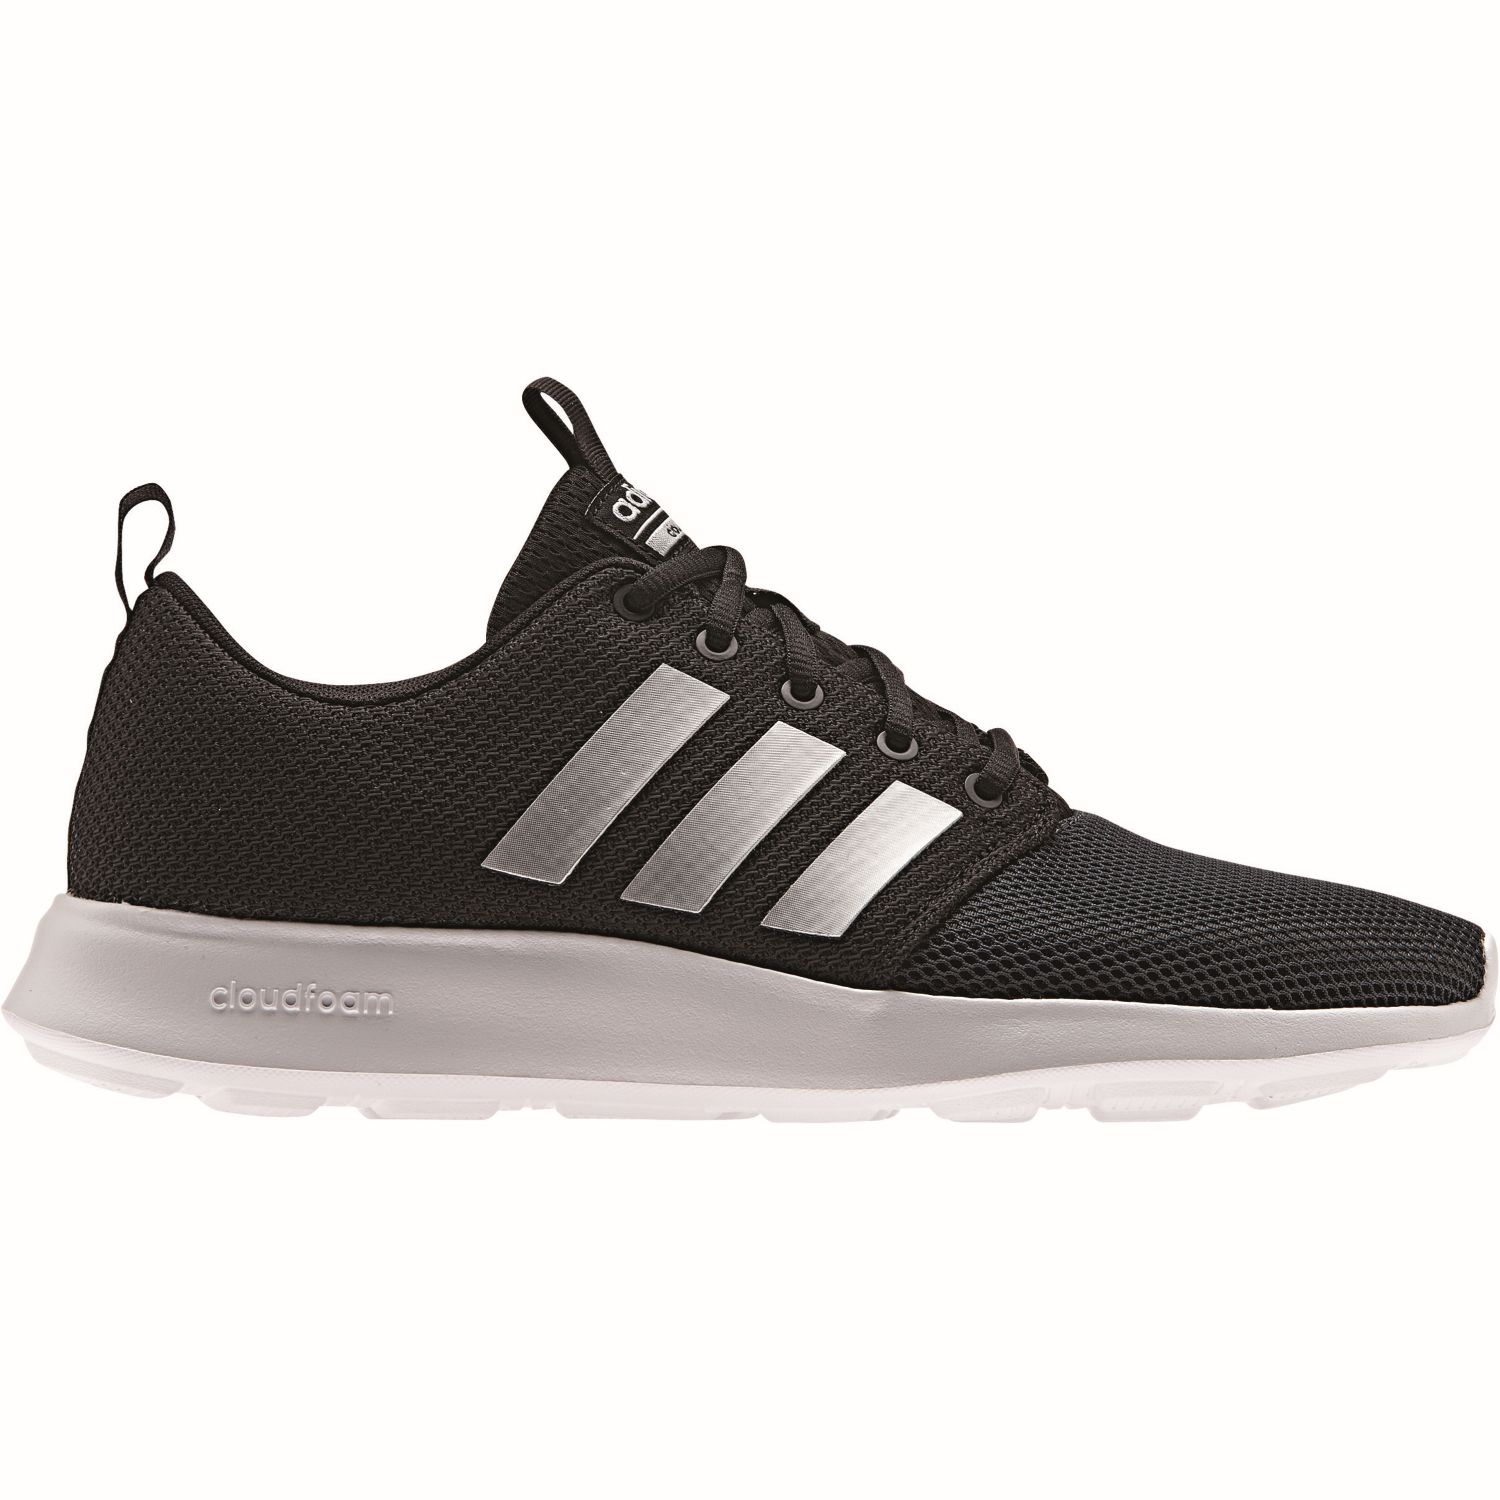 bc9dce3d9c2ce Lowest Price Adidas Nmd Boost Outlet Tennis Shoe On Sale